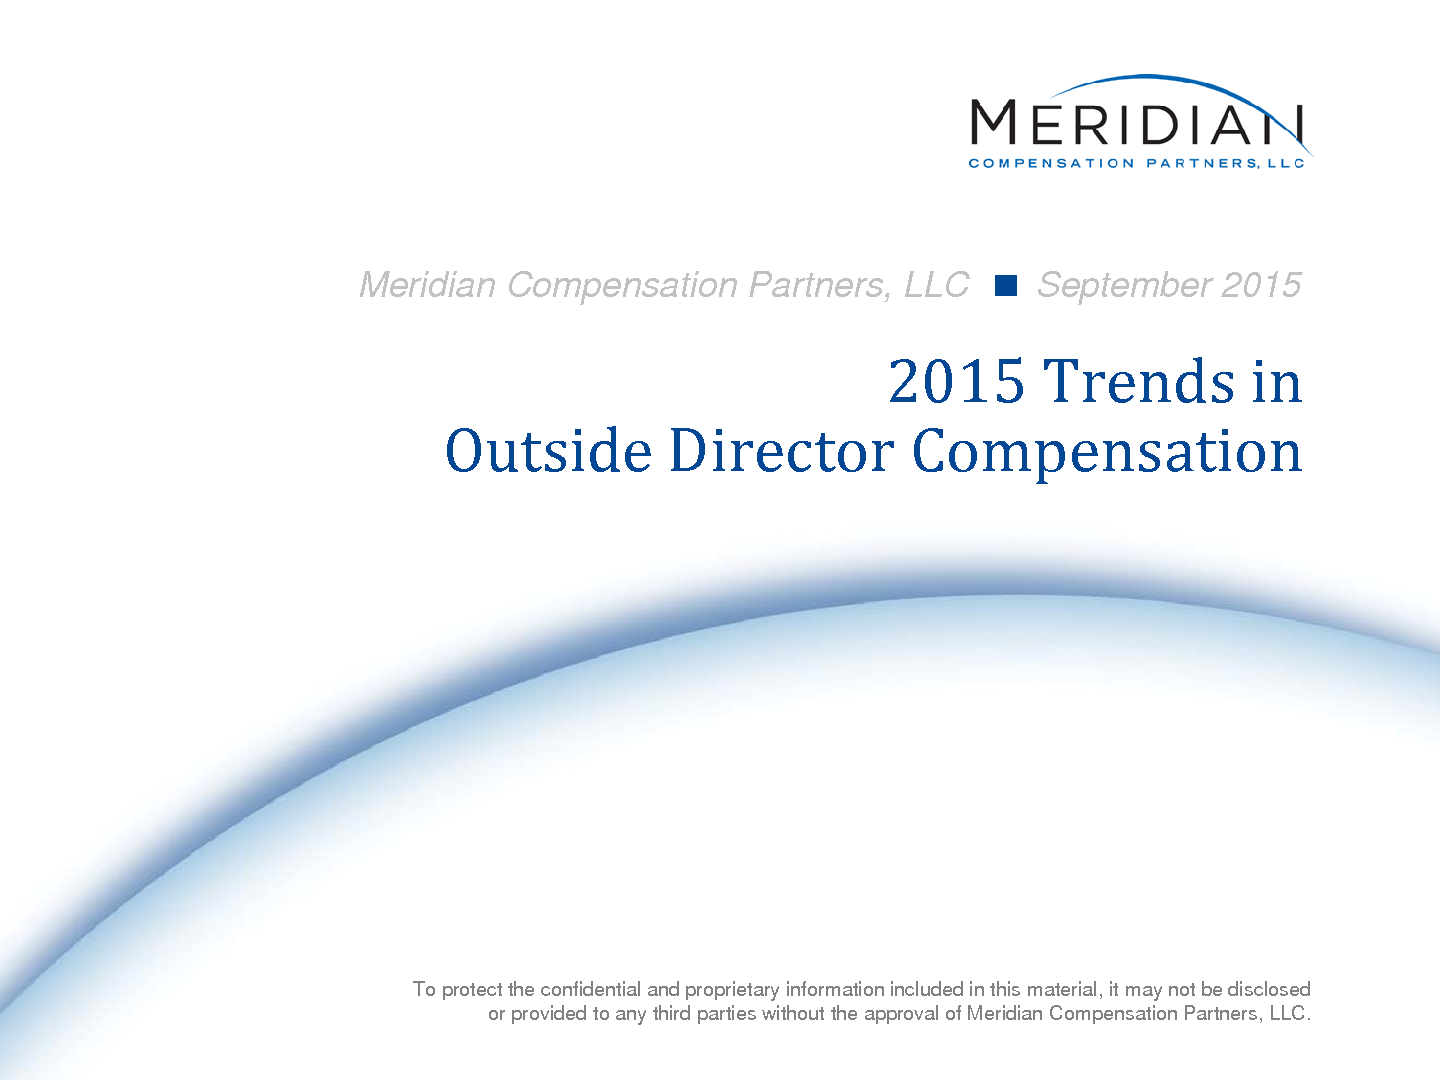 2015 Outside Director Compensation Trends Report (PDF)